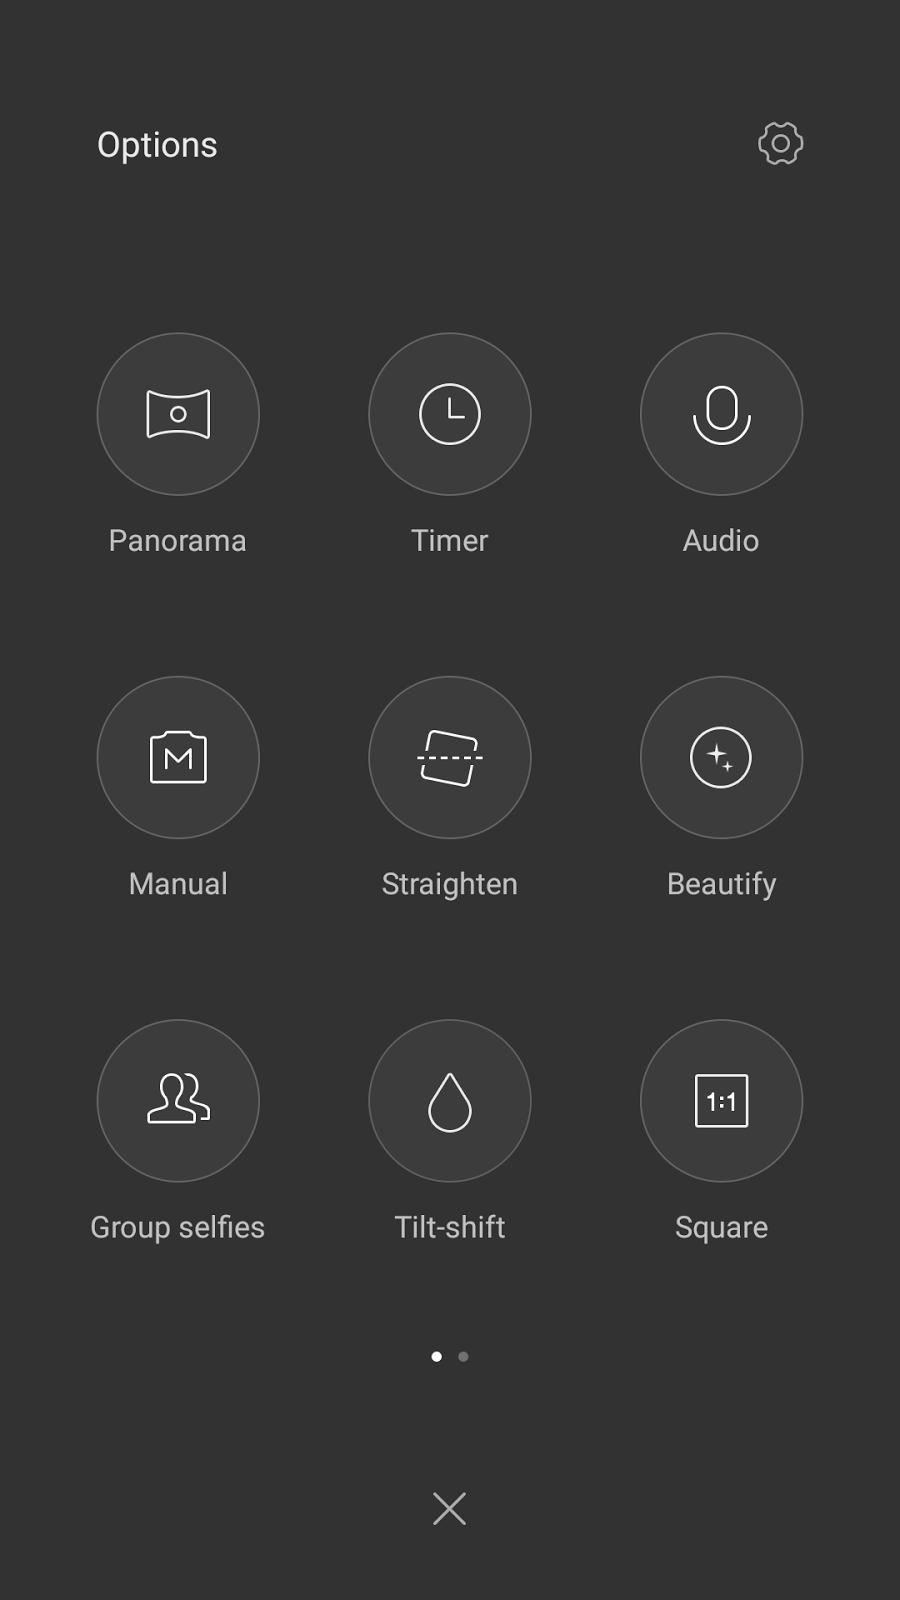 miui camera 2.0 apk download